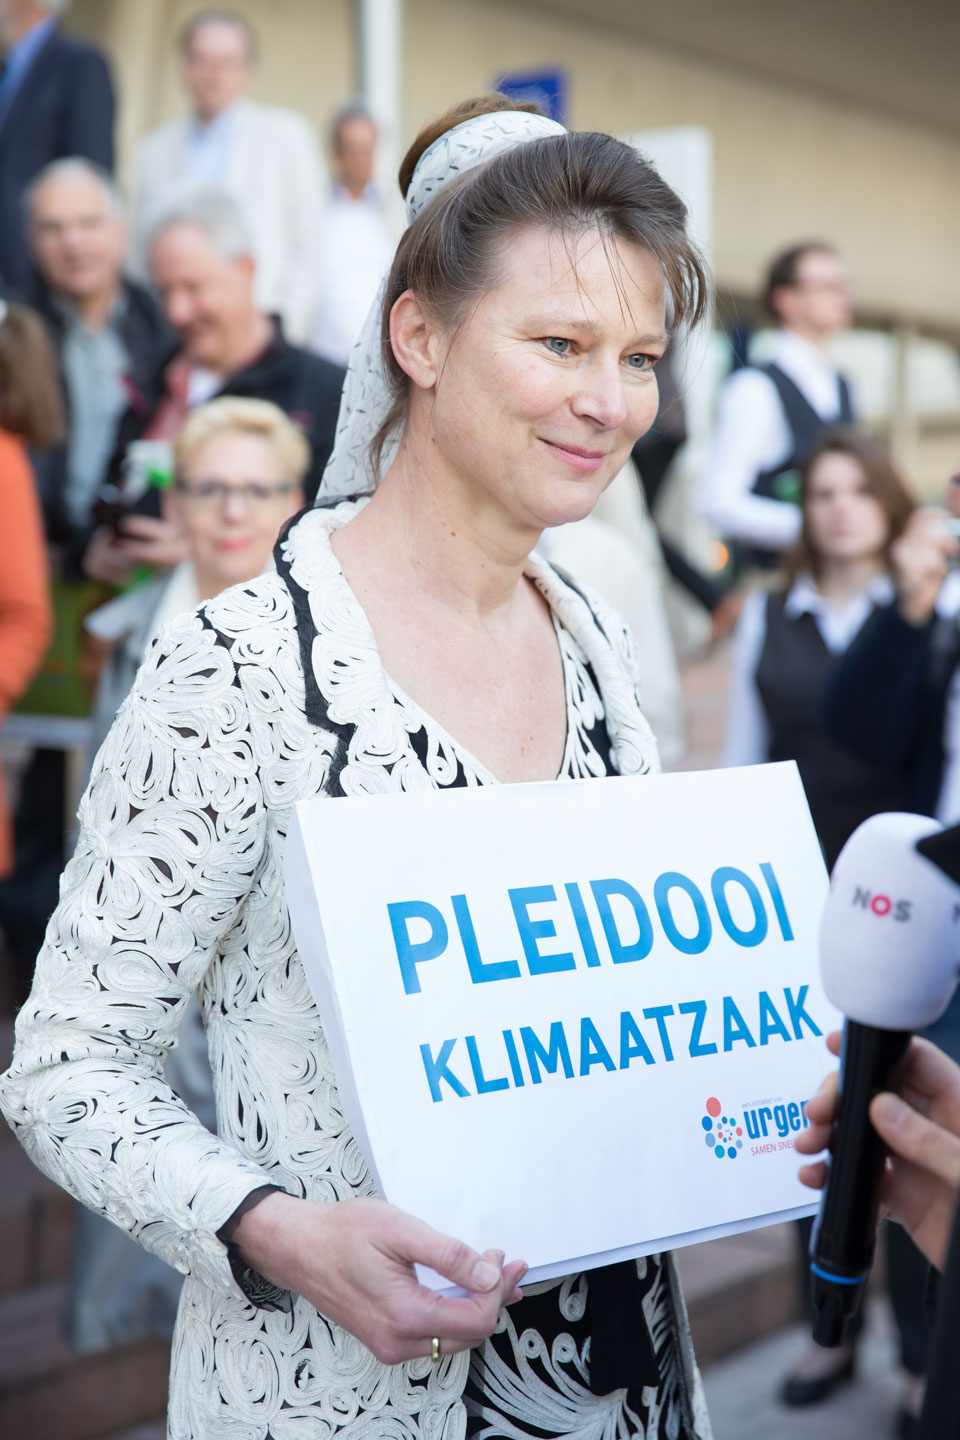 005-Klimaatzaak-credit-Urgenda-Chantal-Bekker-06